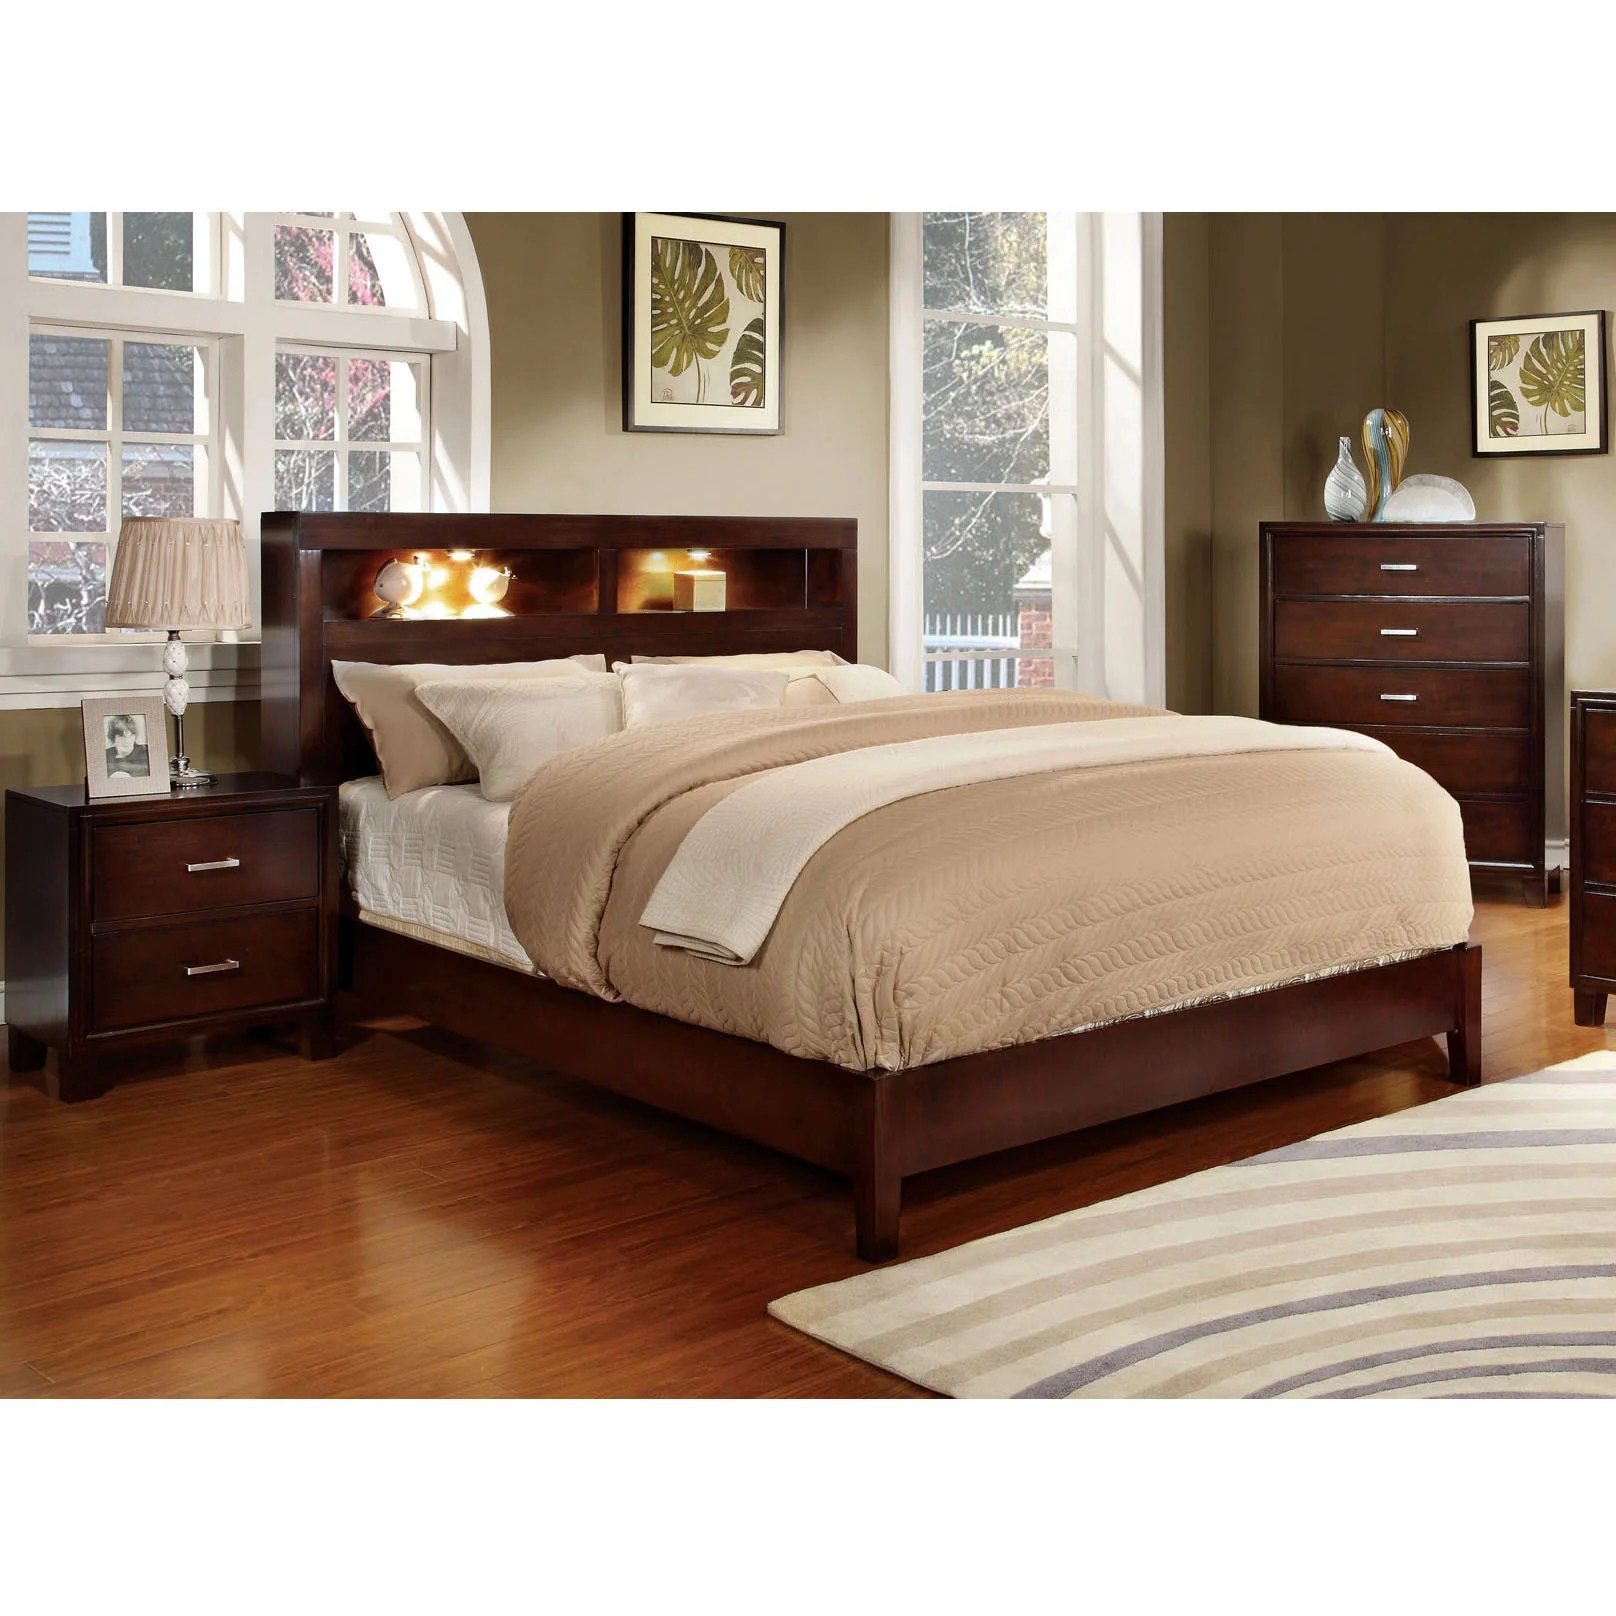 Buy Cherry Finish Bedroom Sets Online At Overstock Our